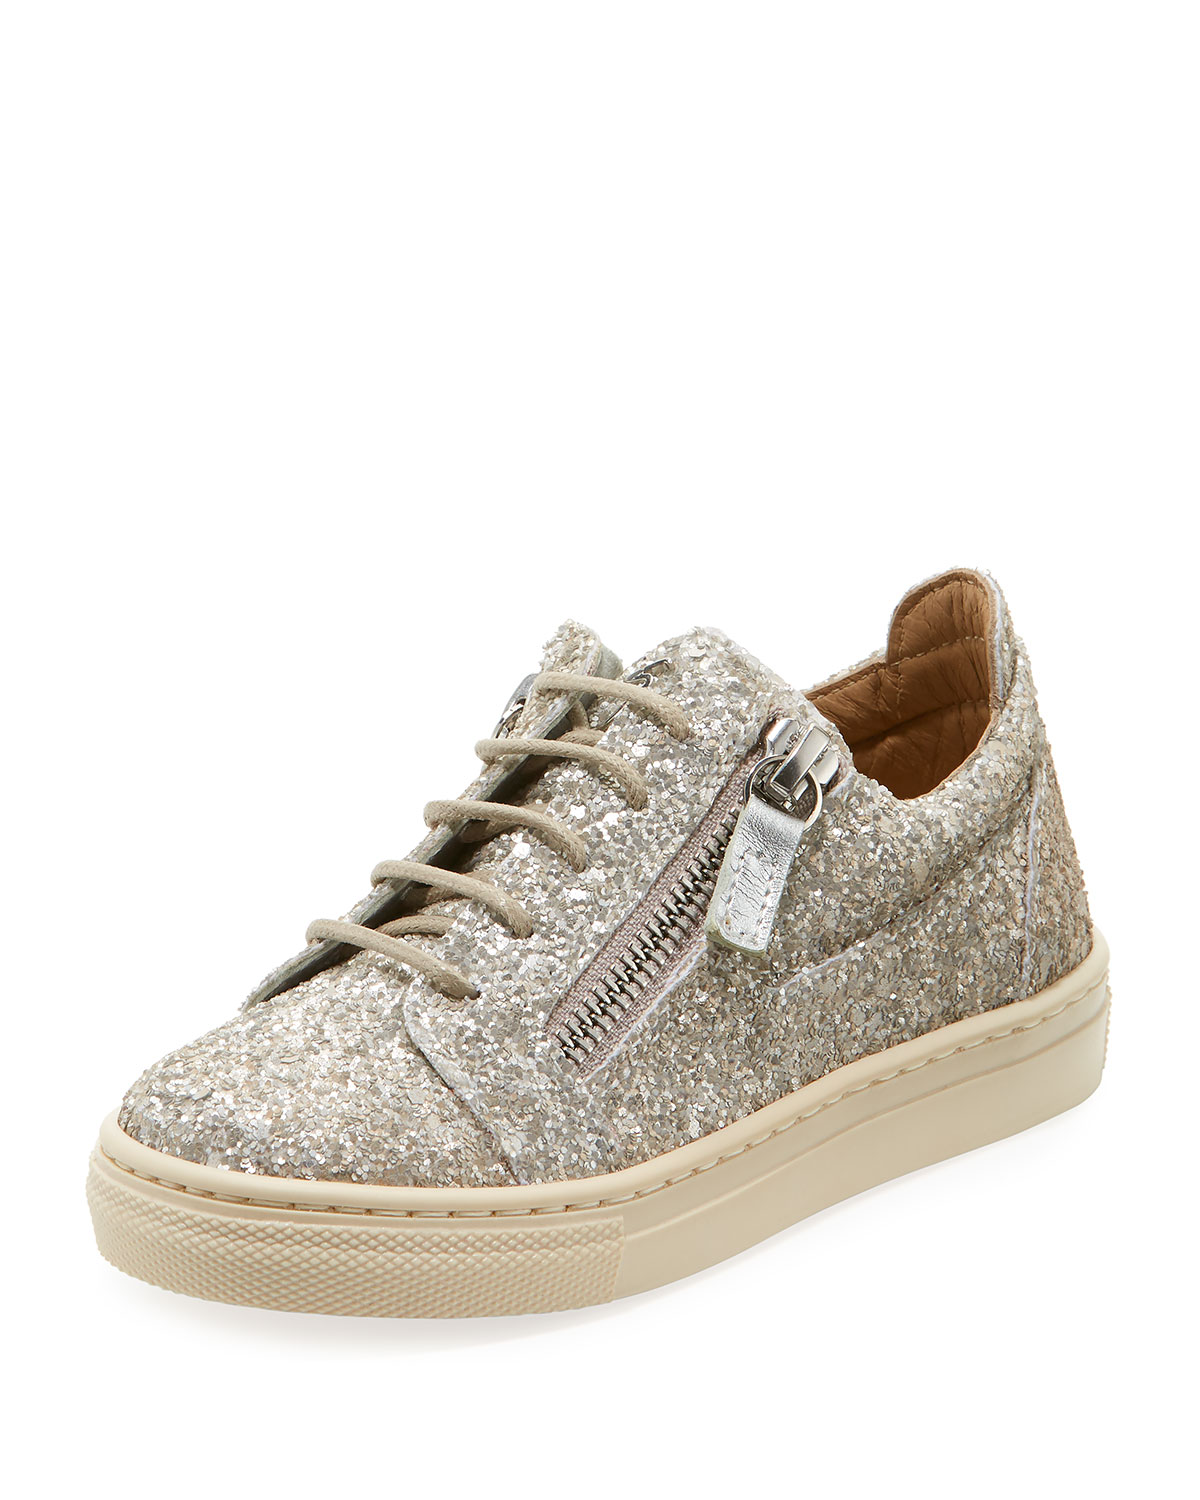 Glittered Low-Top Double Zip Sneakers, Toddler/Kid, Champagne Silver